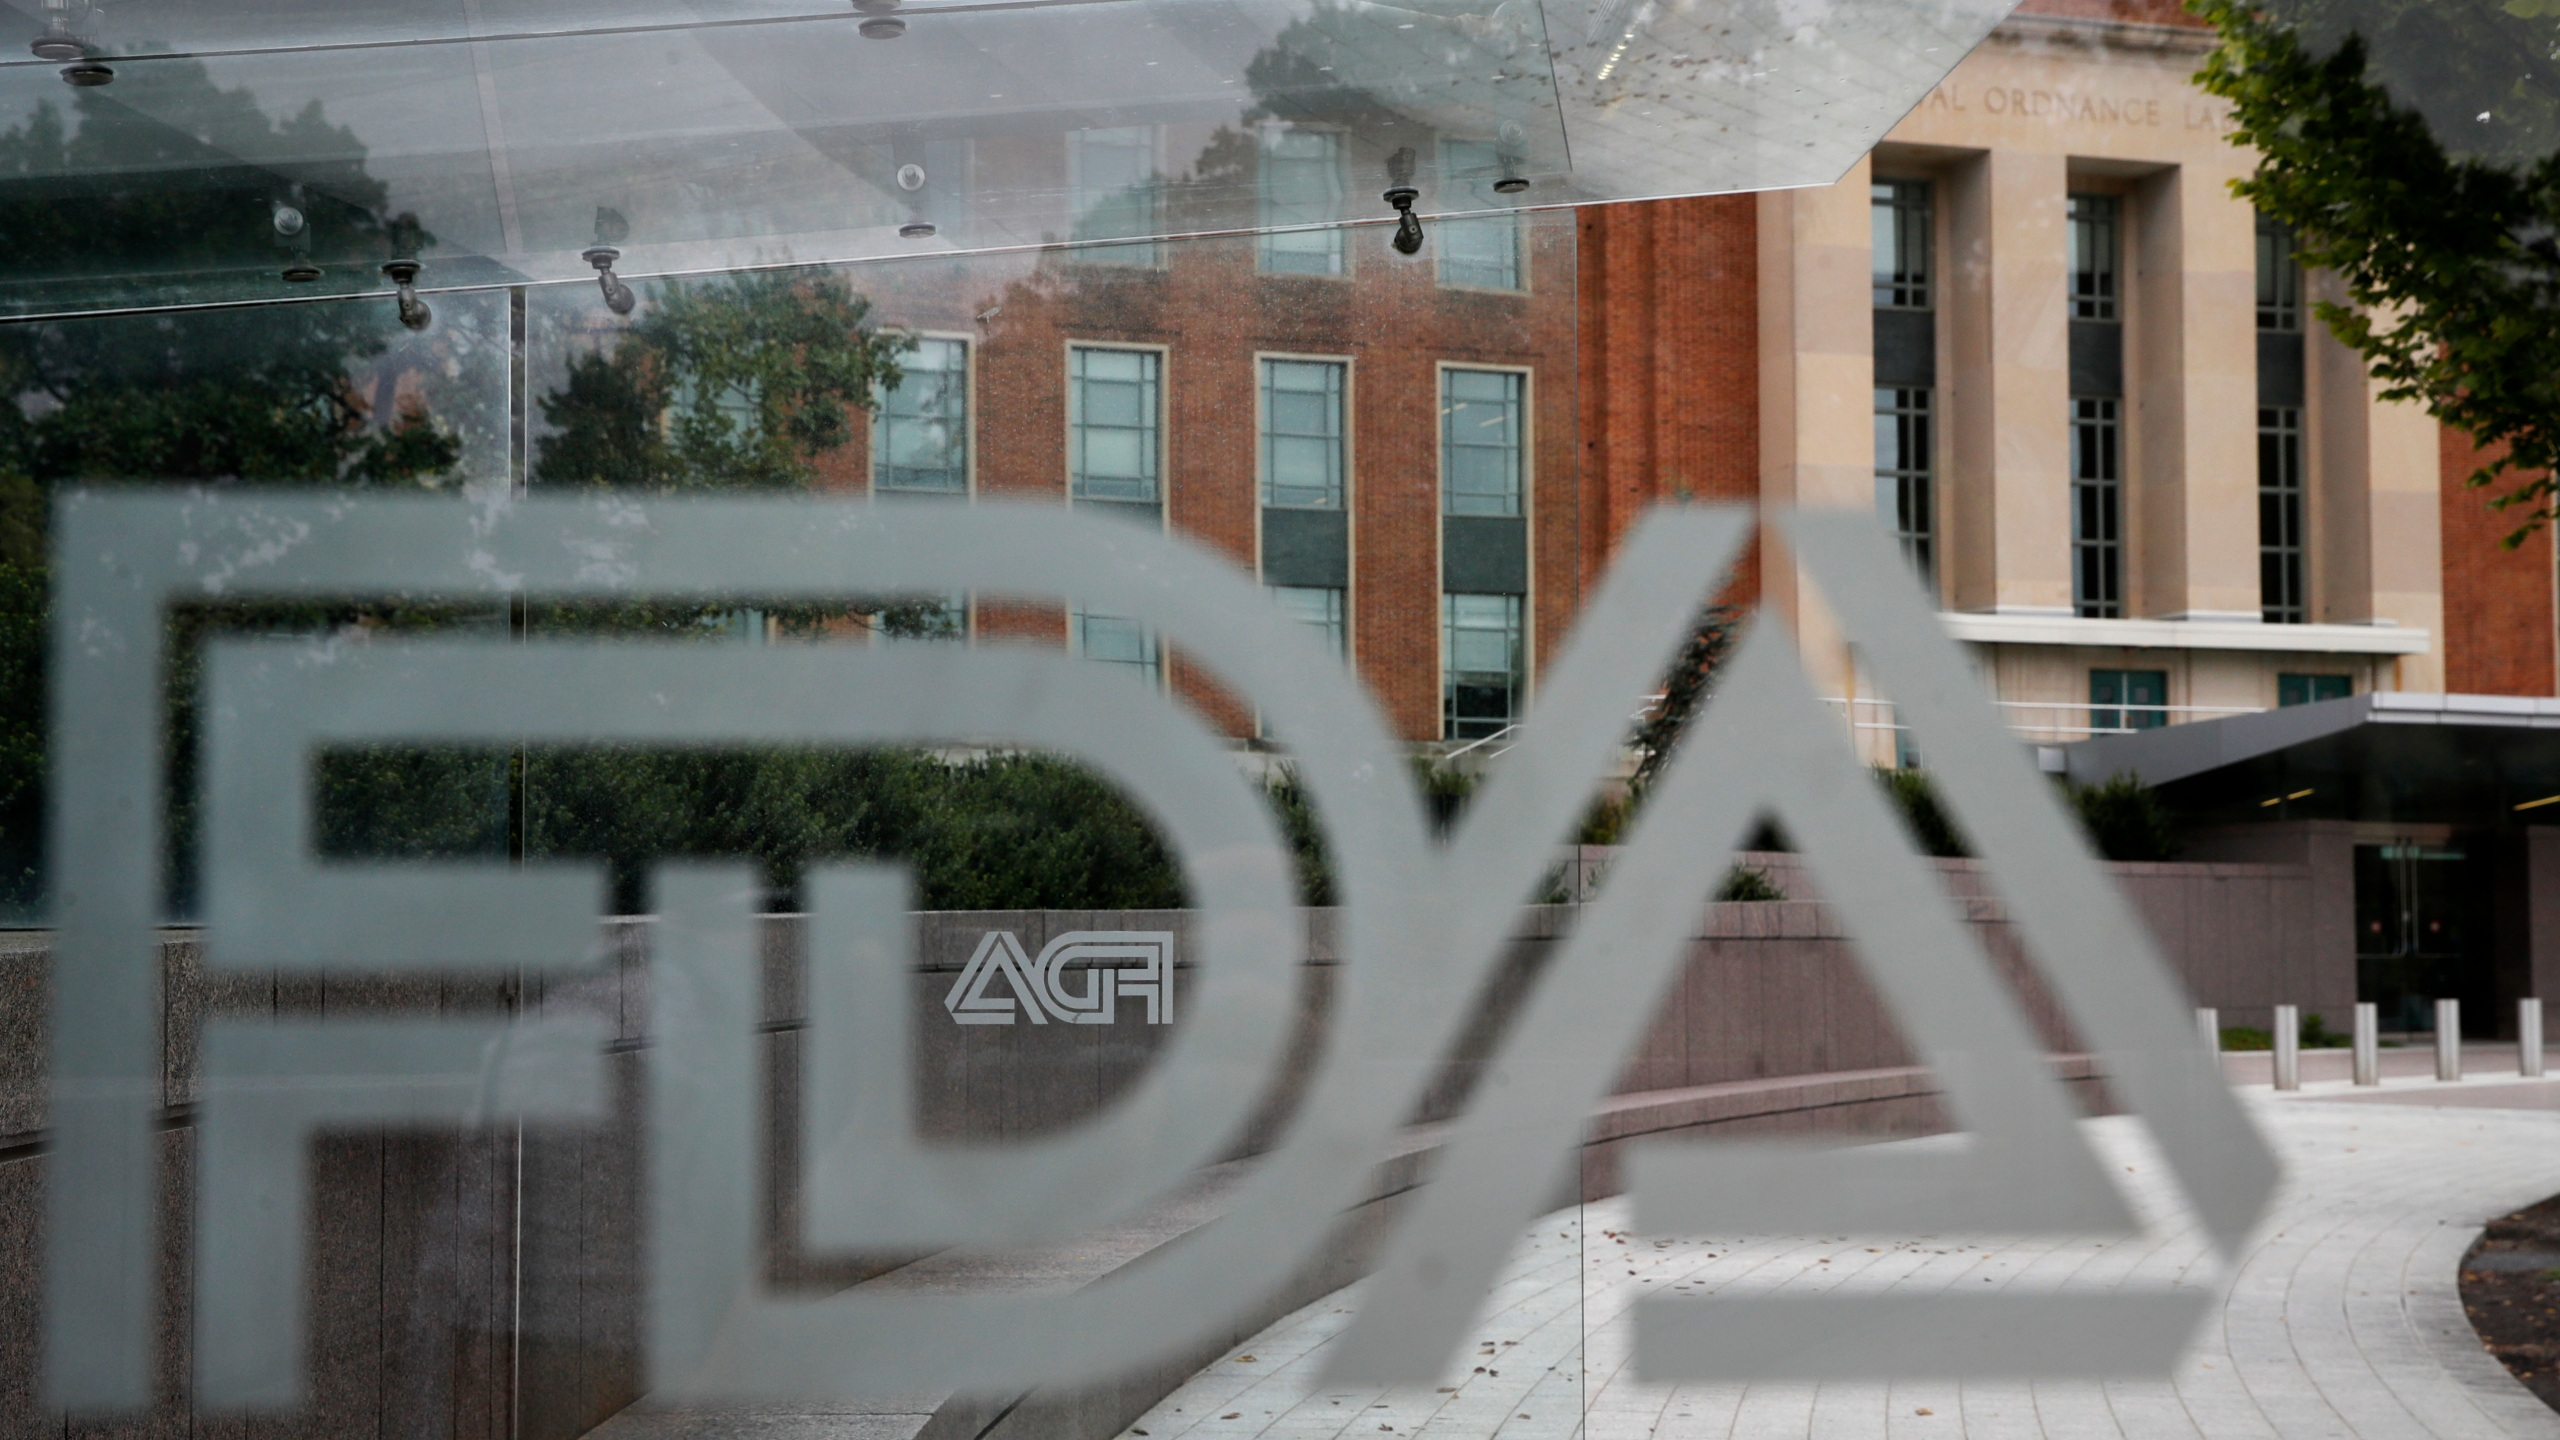 """This Aug. 2, 2018, file photo shows the U.S. Food and Drug Administration building behind FDA logos at a bus stop on the agency's campus in Silver Spring, Md. In a report to Congress and an accompanying """"playbook"""" for states and localities, key federal health agencies and the Defense Department sketched out complex plans for a vaccination campaign to begin gradually early next year or later in 2020, eventually ramping up to reach any American who wants a shot. The Pentagon is involved with the distribution of vaccines, but civilian health workers will be the ones giving shots. (AP Photo/Jacquelyn Martin, File)"""